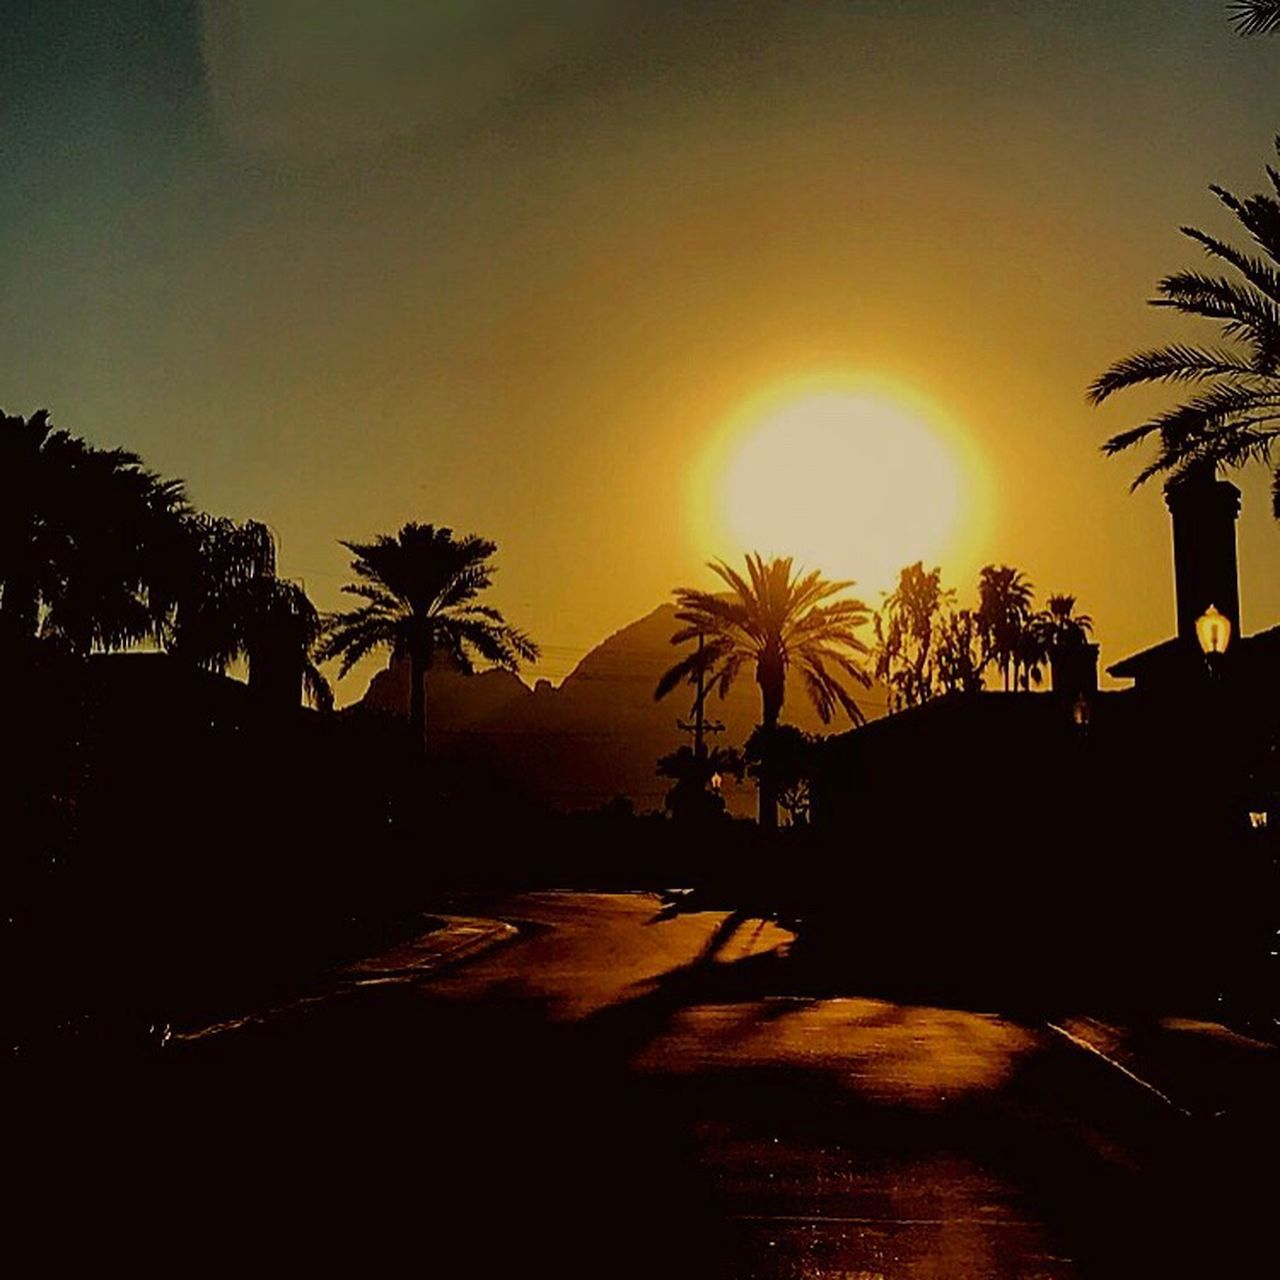 palm tree, tree, silhouette, sunset, tranquil scene, swimming pool, sun, tranquility, outdoors, beauty in nature, sky, scenics, sunlight, vacations, nature, no people, growth, sea, clear sky, day